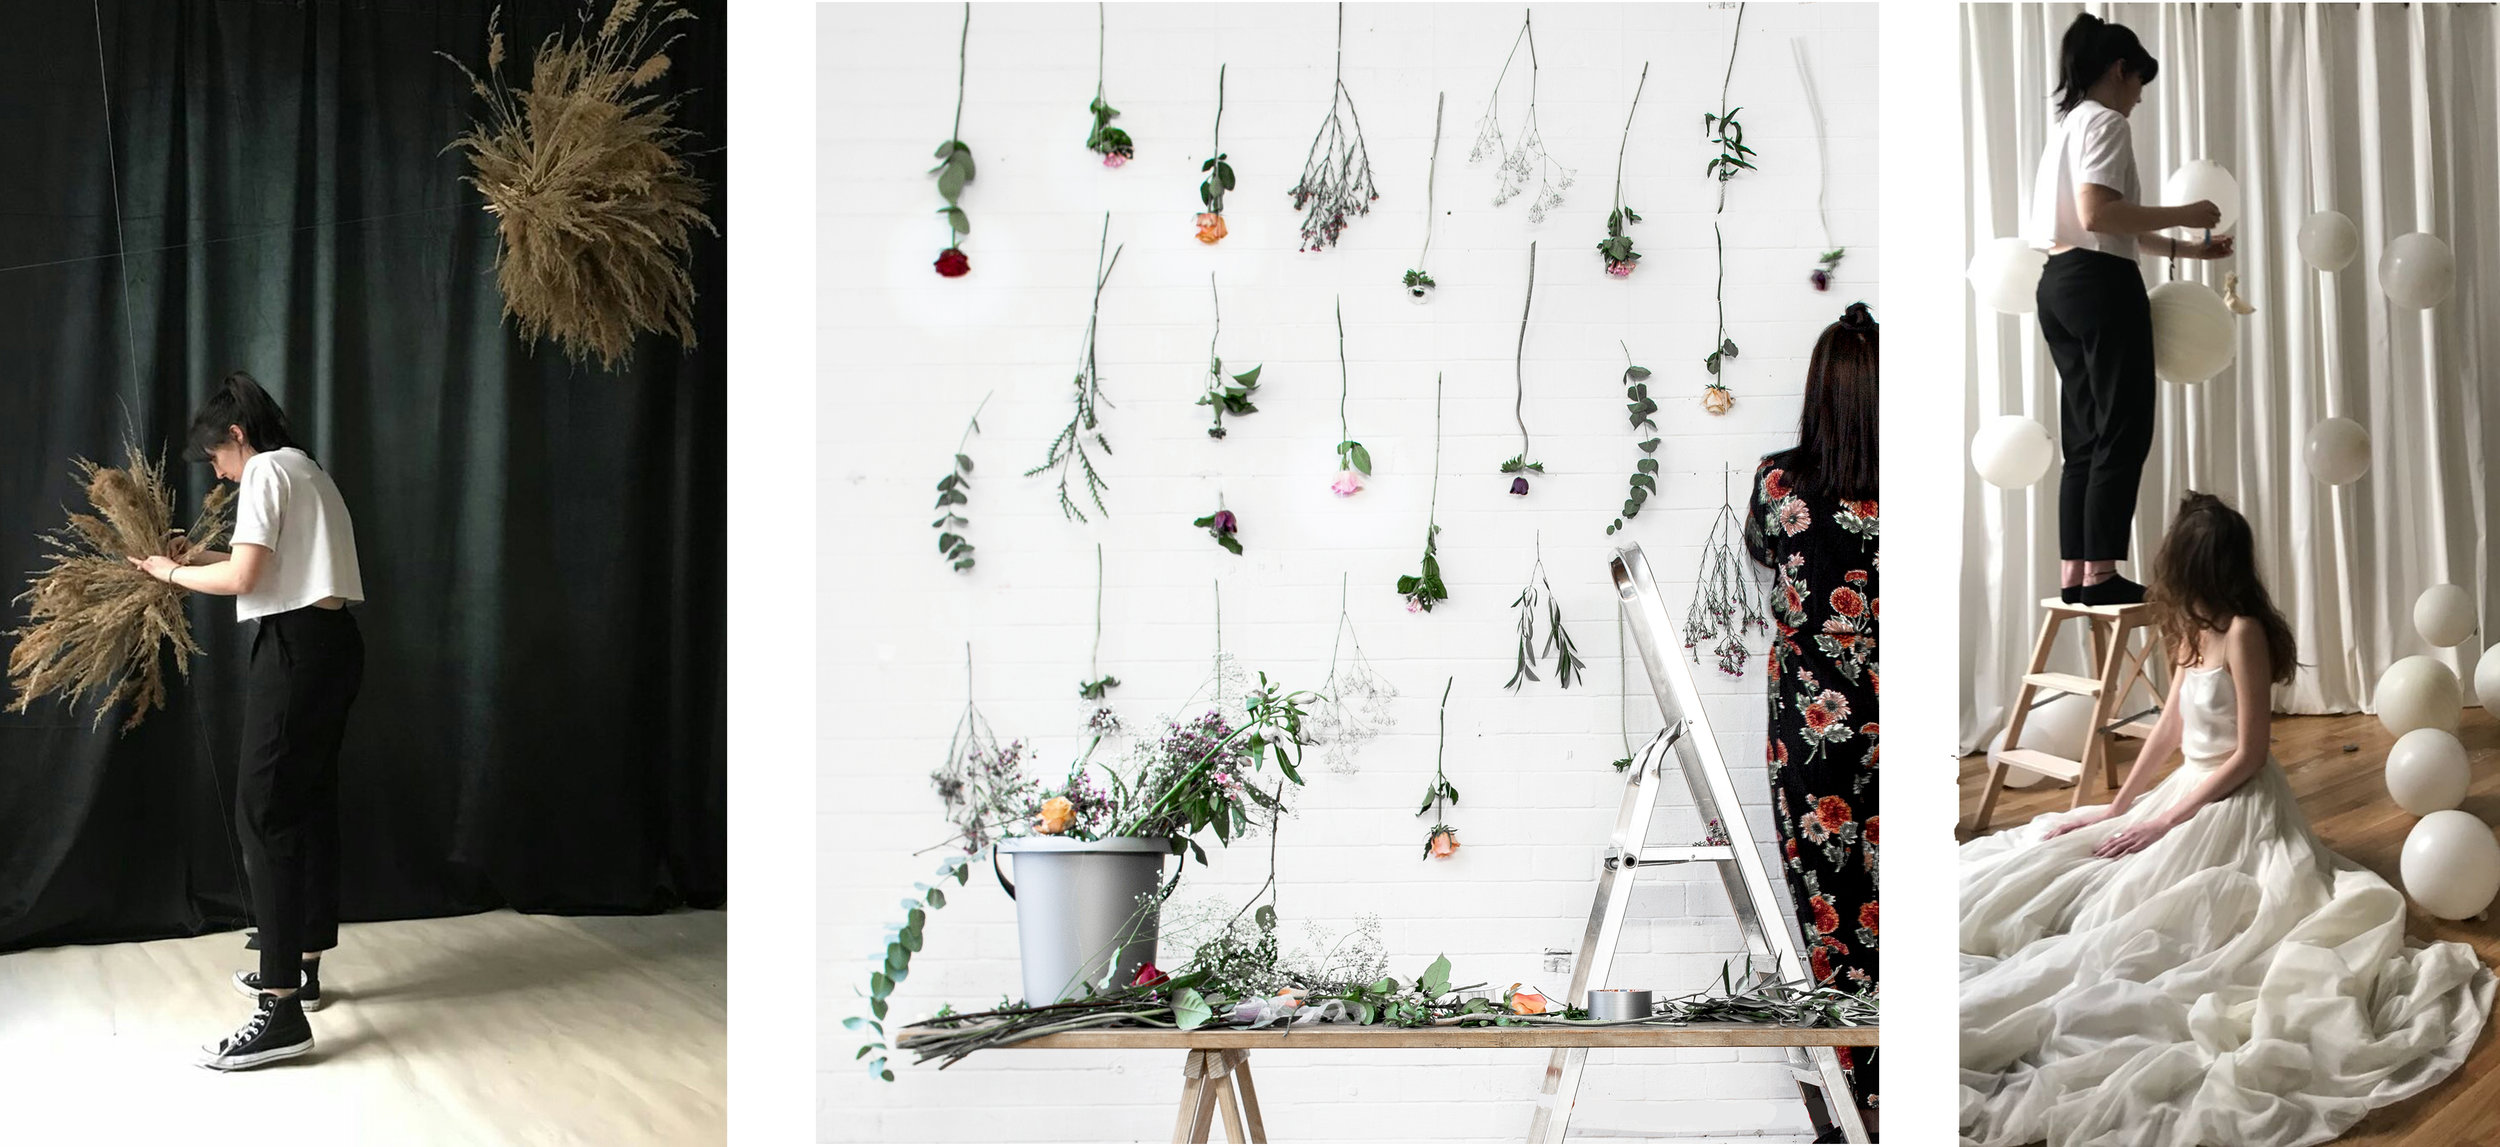 Set designer at work in Berlin creating floral installation wall hangings and clouds for event design projects and sculptural designs for a bridal editorial shoot